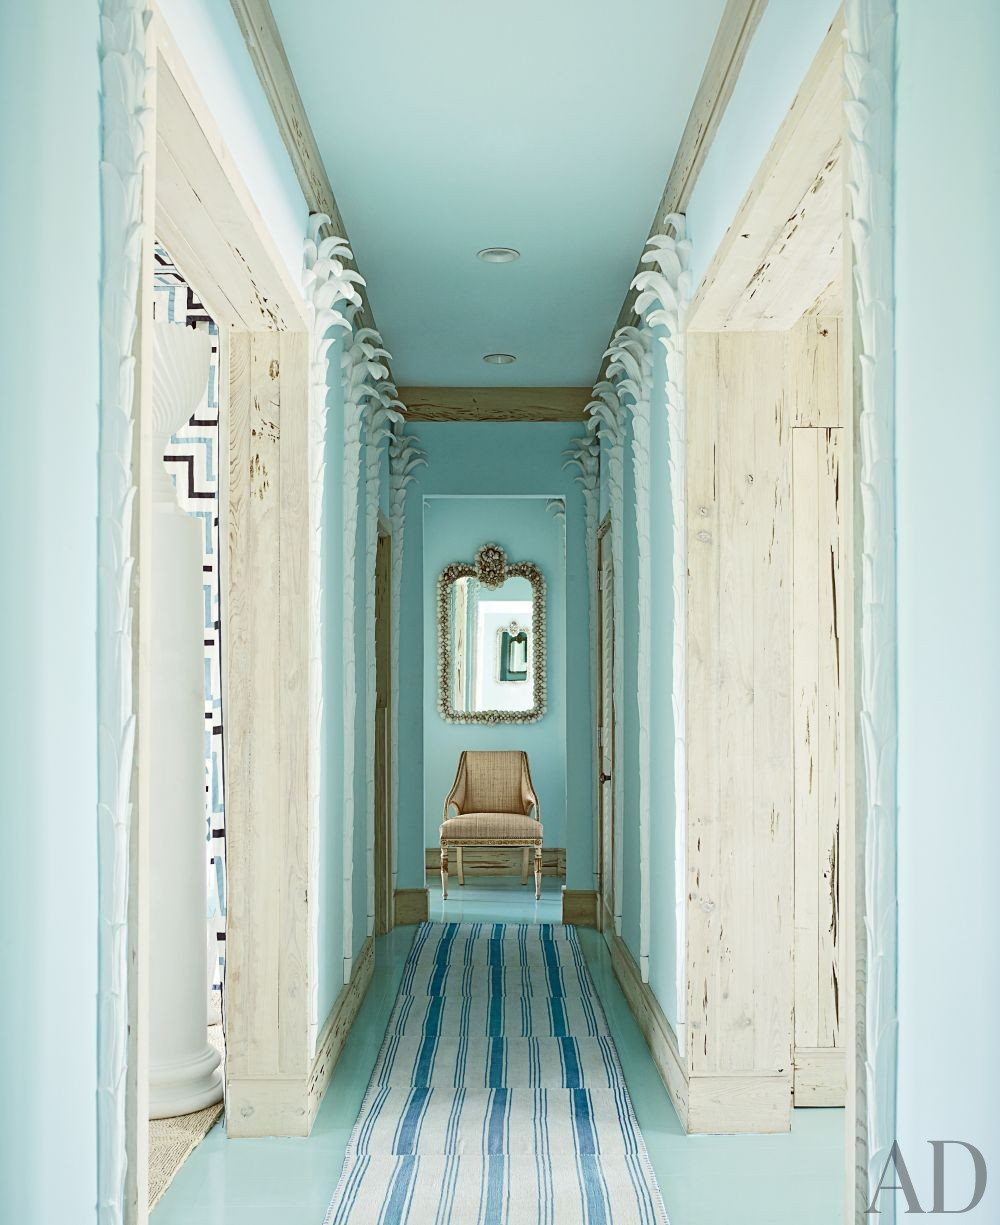 Beach Staircase/Hallway by Miles Redd in Lyford Cay, Bahamas